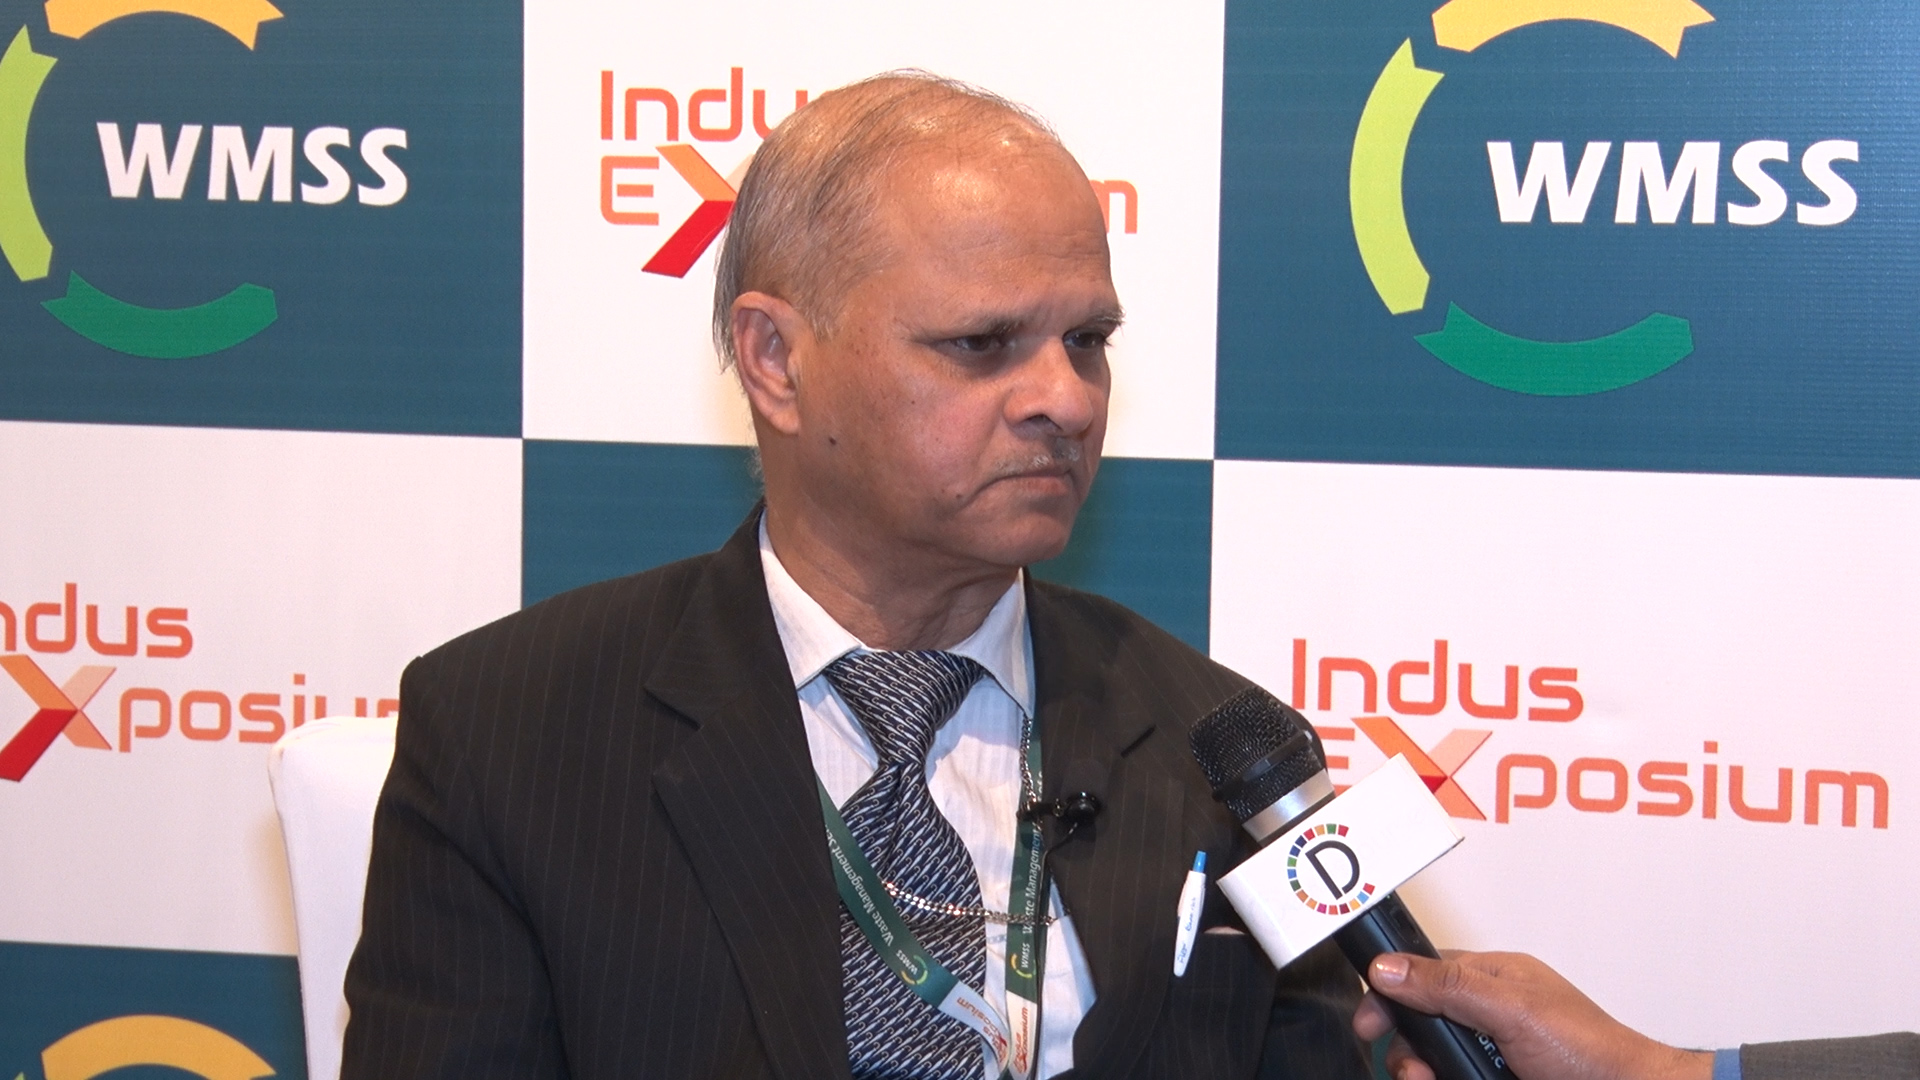 Waste Management should be recognized as an Industry in India: Dr. S. C. Sharma, Convenor, WMSS 2020